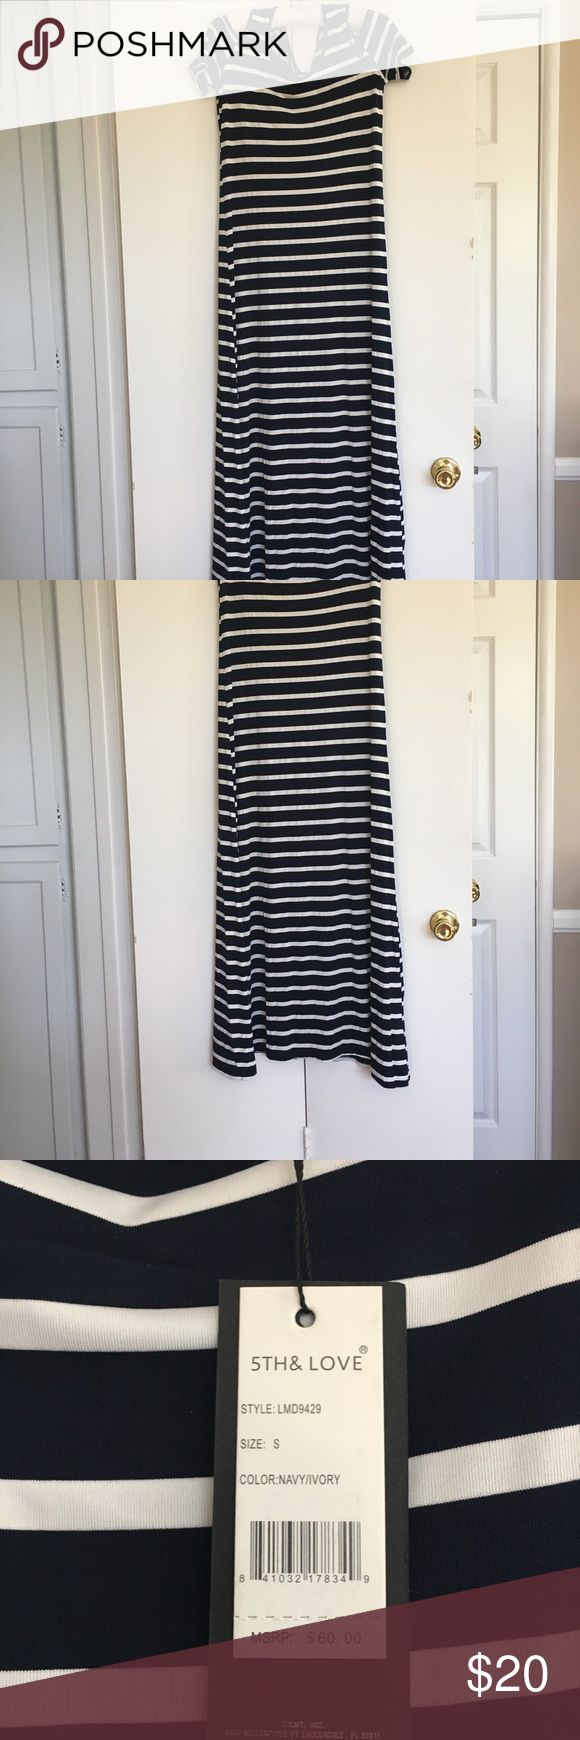 "NWT cold shoulder striped maxi dress NWT cold shoulder striped maxi dress. 54"" long from shoulders to bottom. Size is small but can easily fit medium, material is stretchy and lightweight. I don't believe it's see through at all! 5th & Love Dresses Maxi"